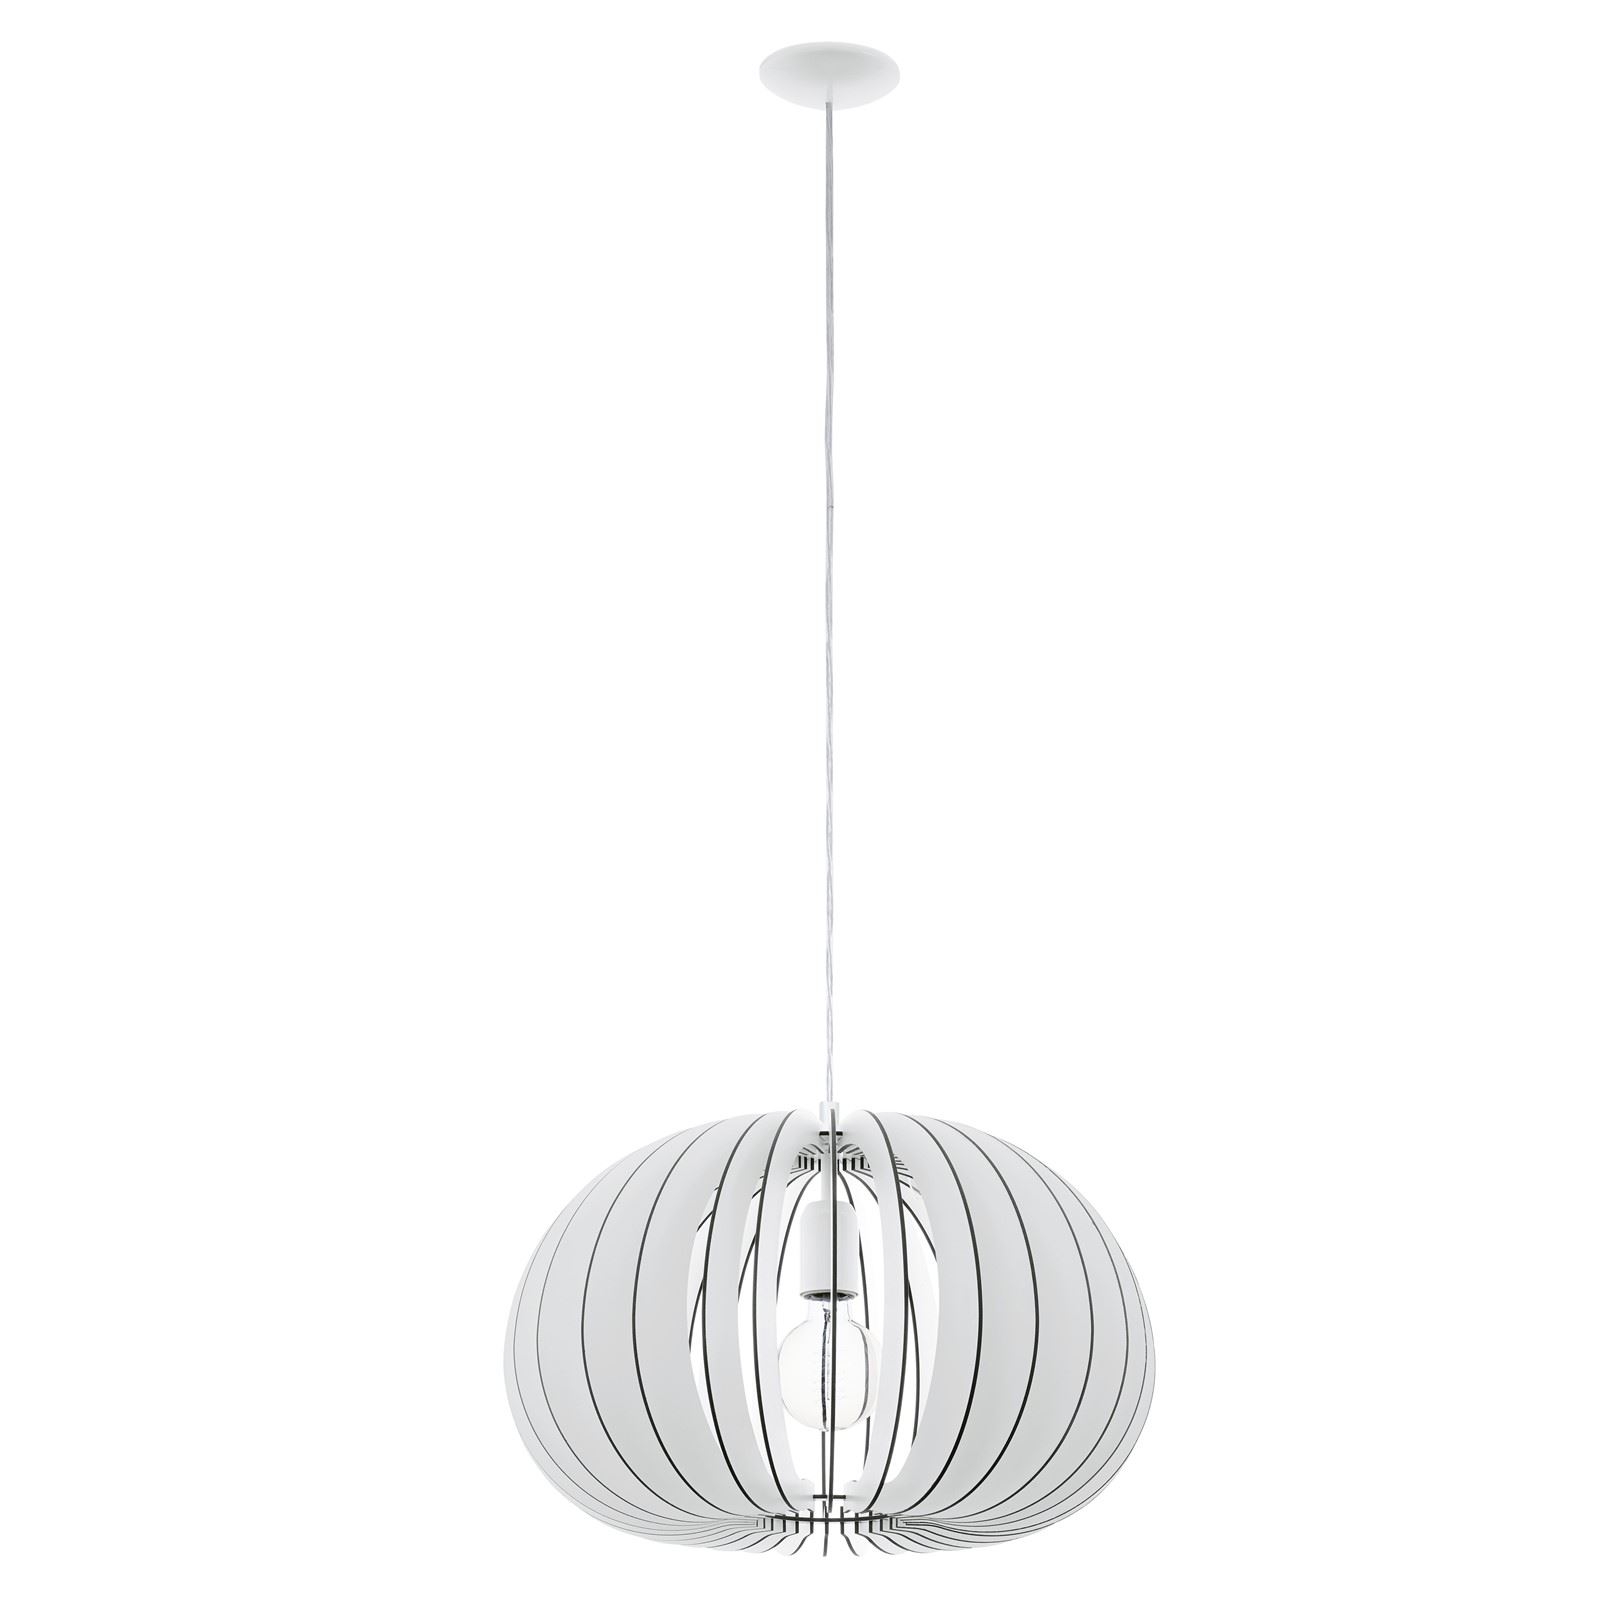 Cossano 1 Hanging Pendant Light E27 Dia 450mm Wood White Shade